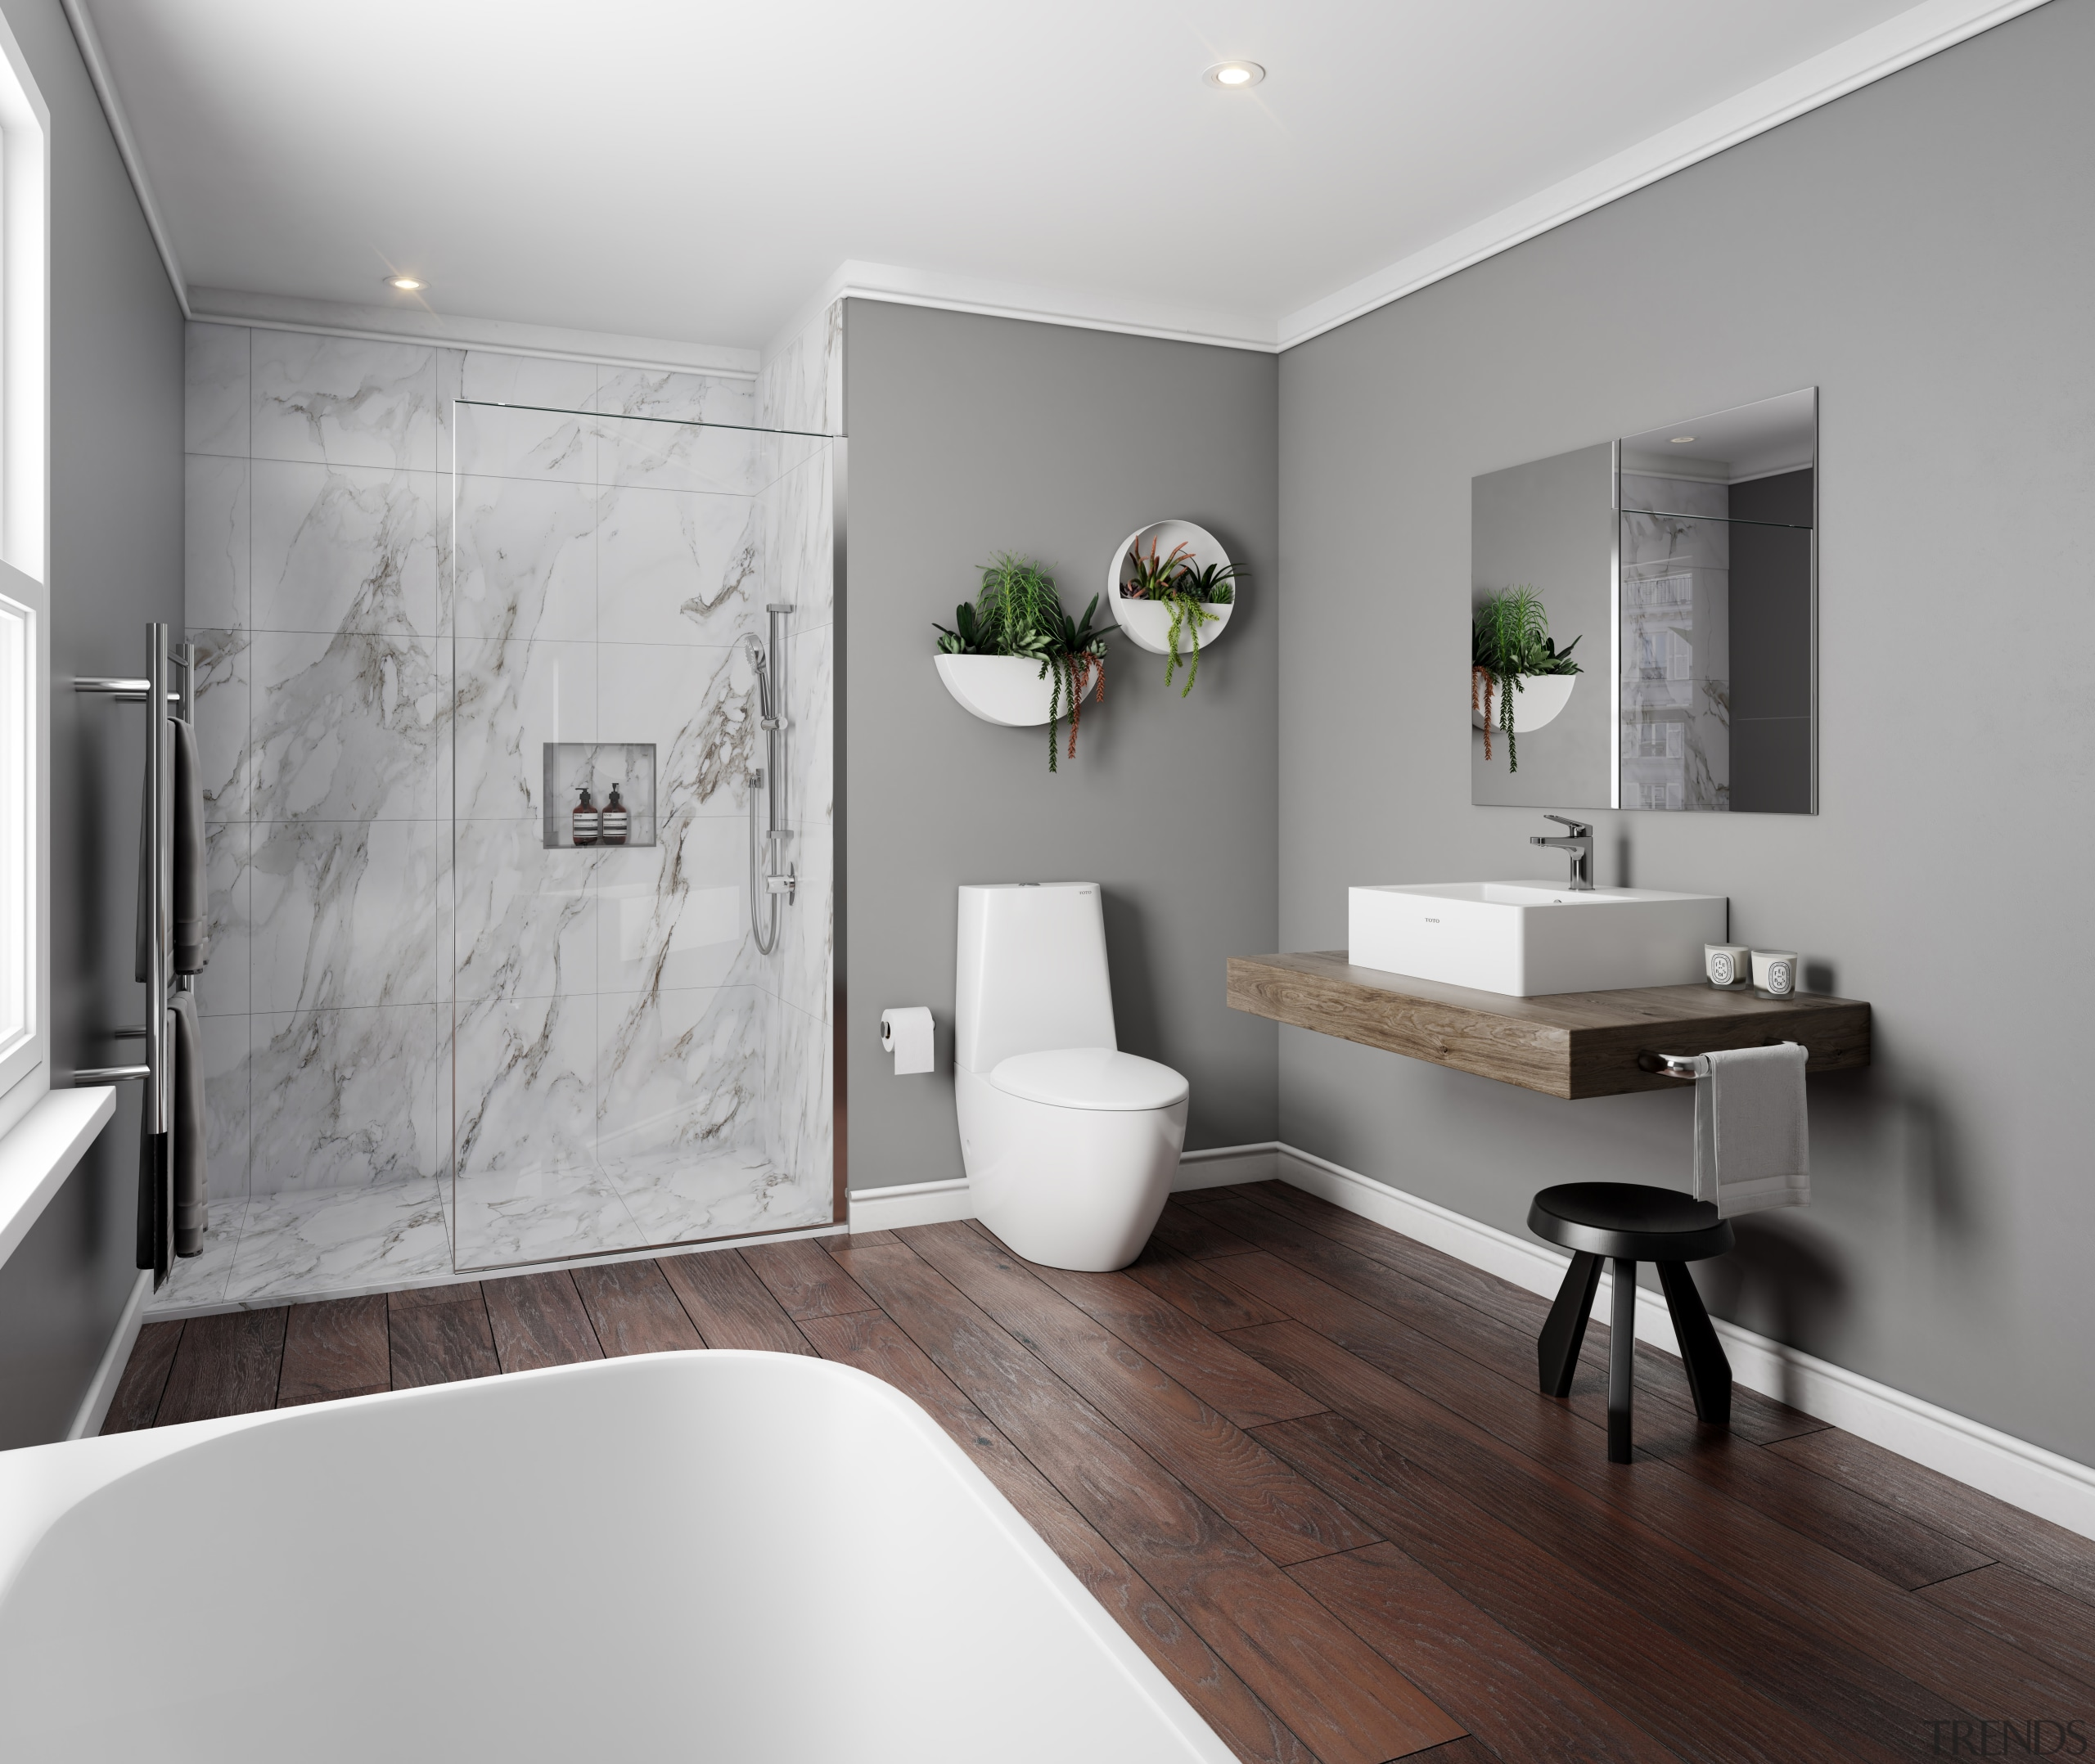 Create your personal bathroom sanctuary with a TOTO architecture, bathroom, bathroom accessory, floor, home, interior design, plumbing fixture, room, sink, tap, wall, gray